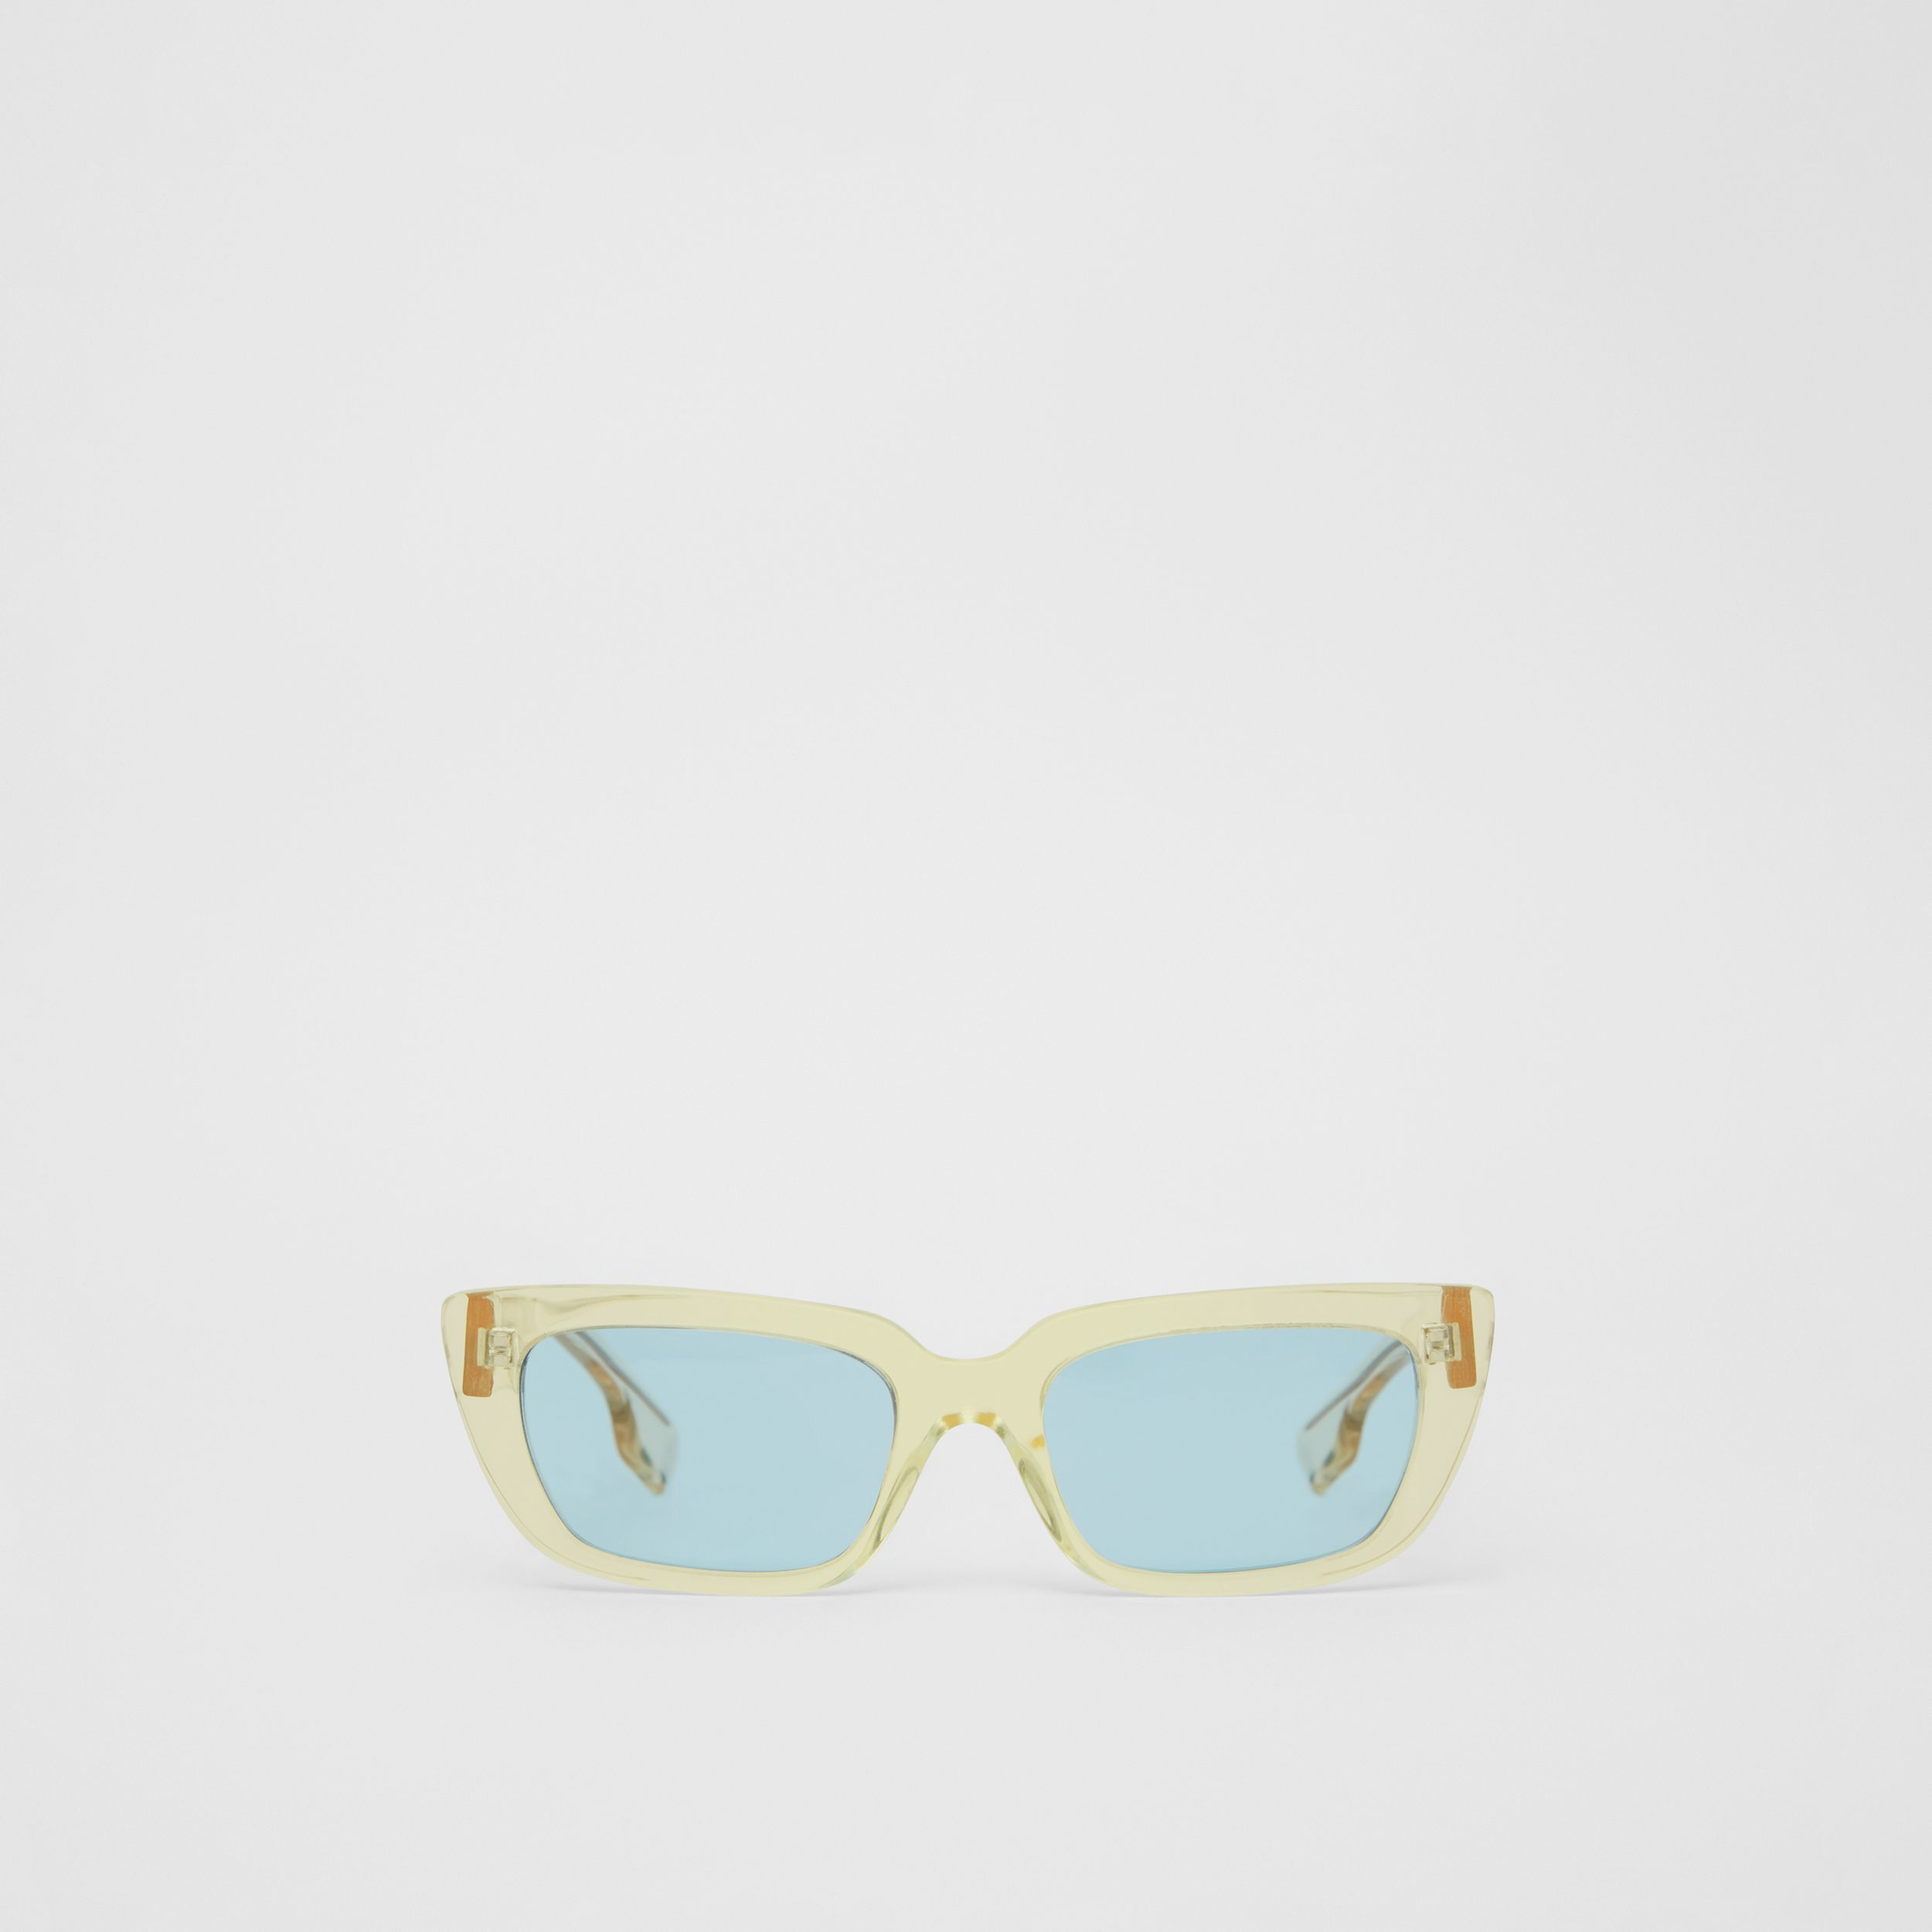 Bio-acetate Rectangular Frame Sunglasses in Pale Yellow - Women | Burberry - 1